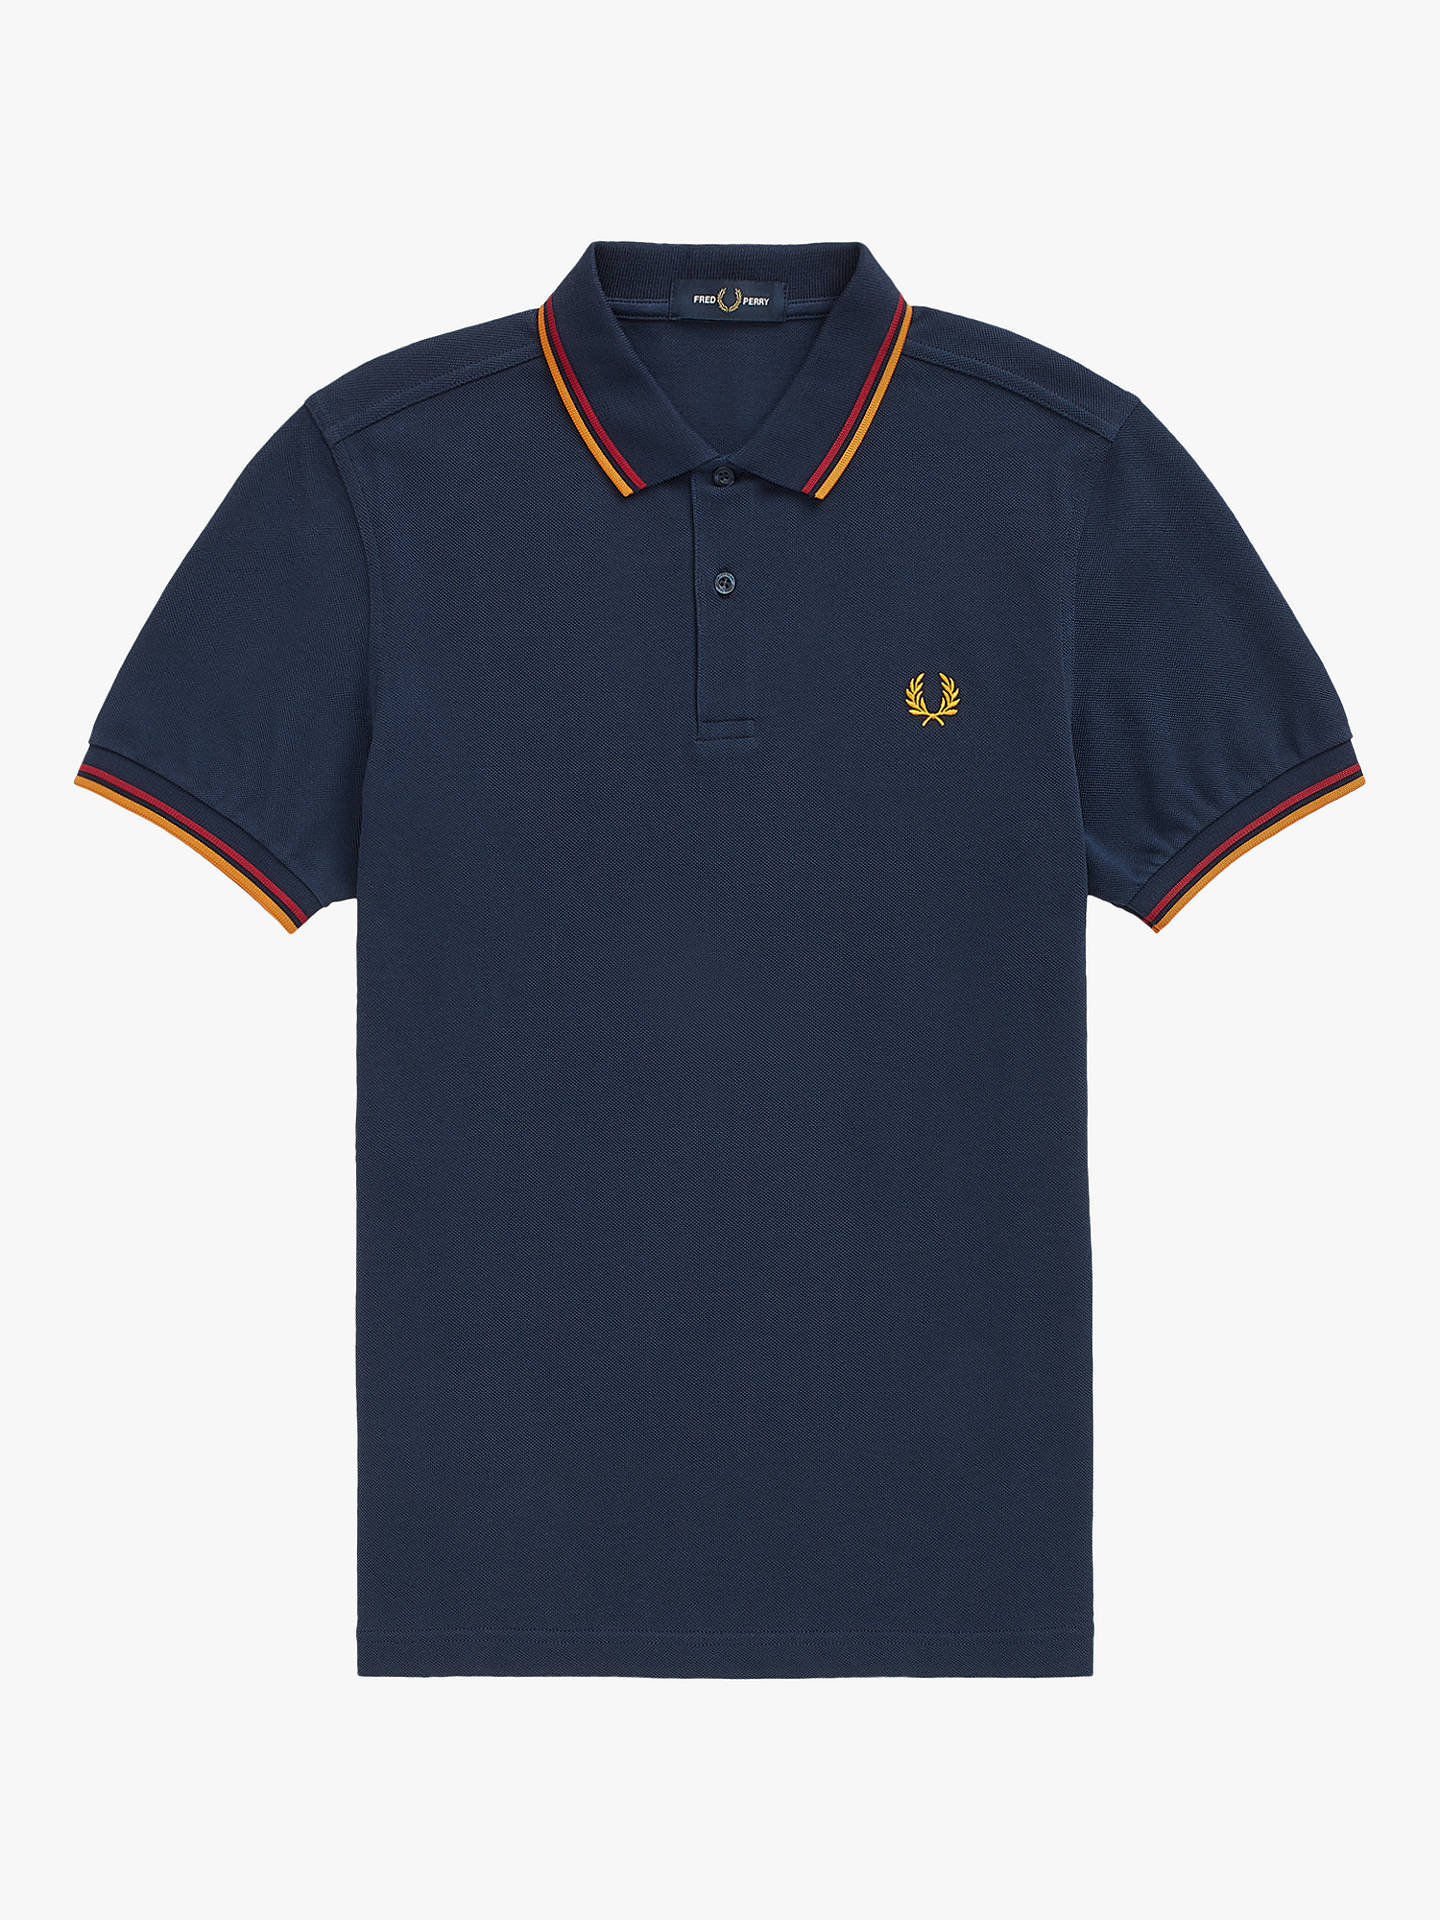 Buy Fred Perry Twin Tipped Regular Fit Polo Shirt, Dark Carbon/Deep Red/Amber, S Online at johnlewis.com